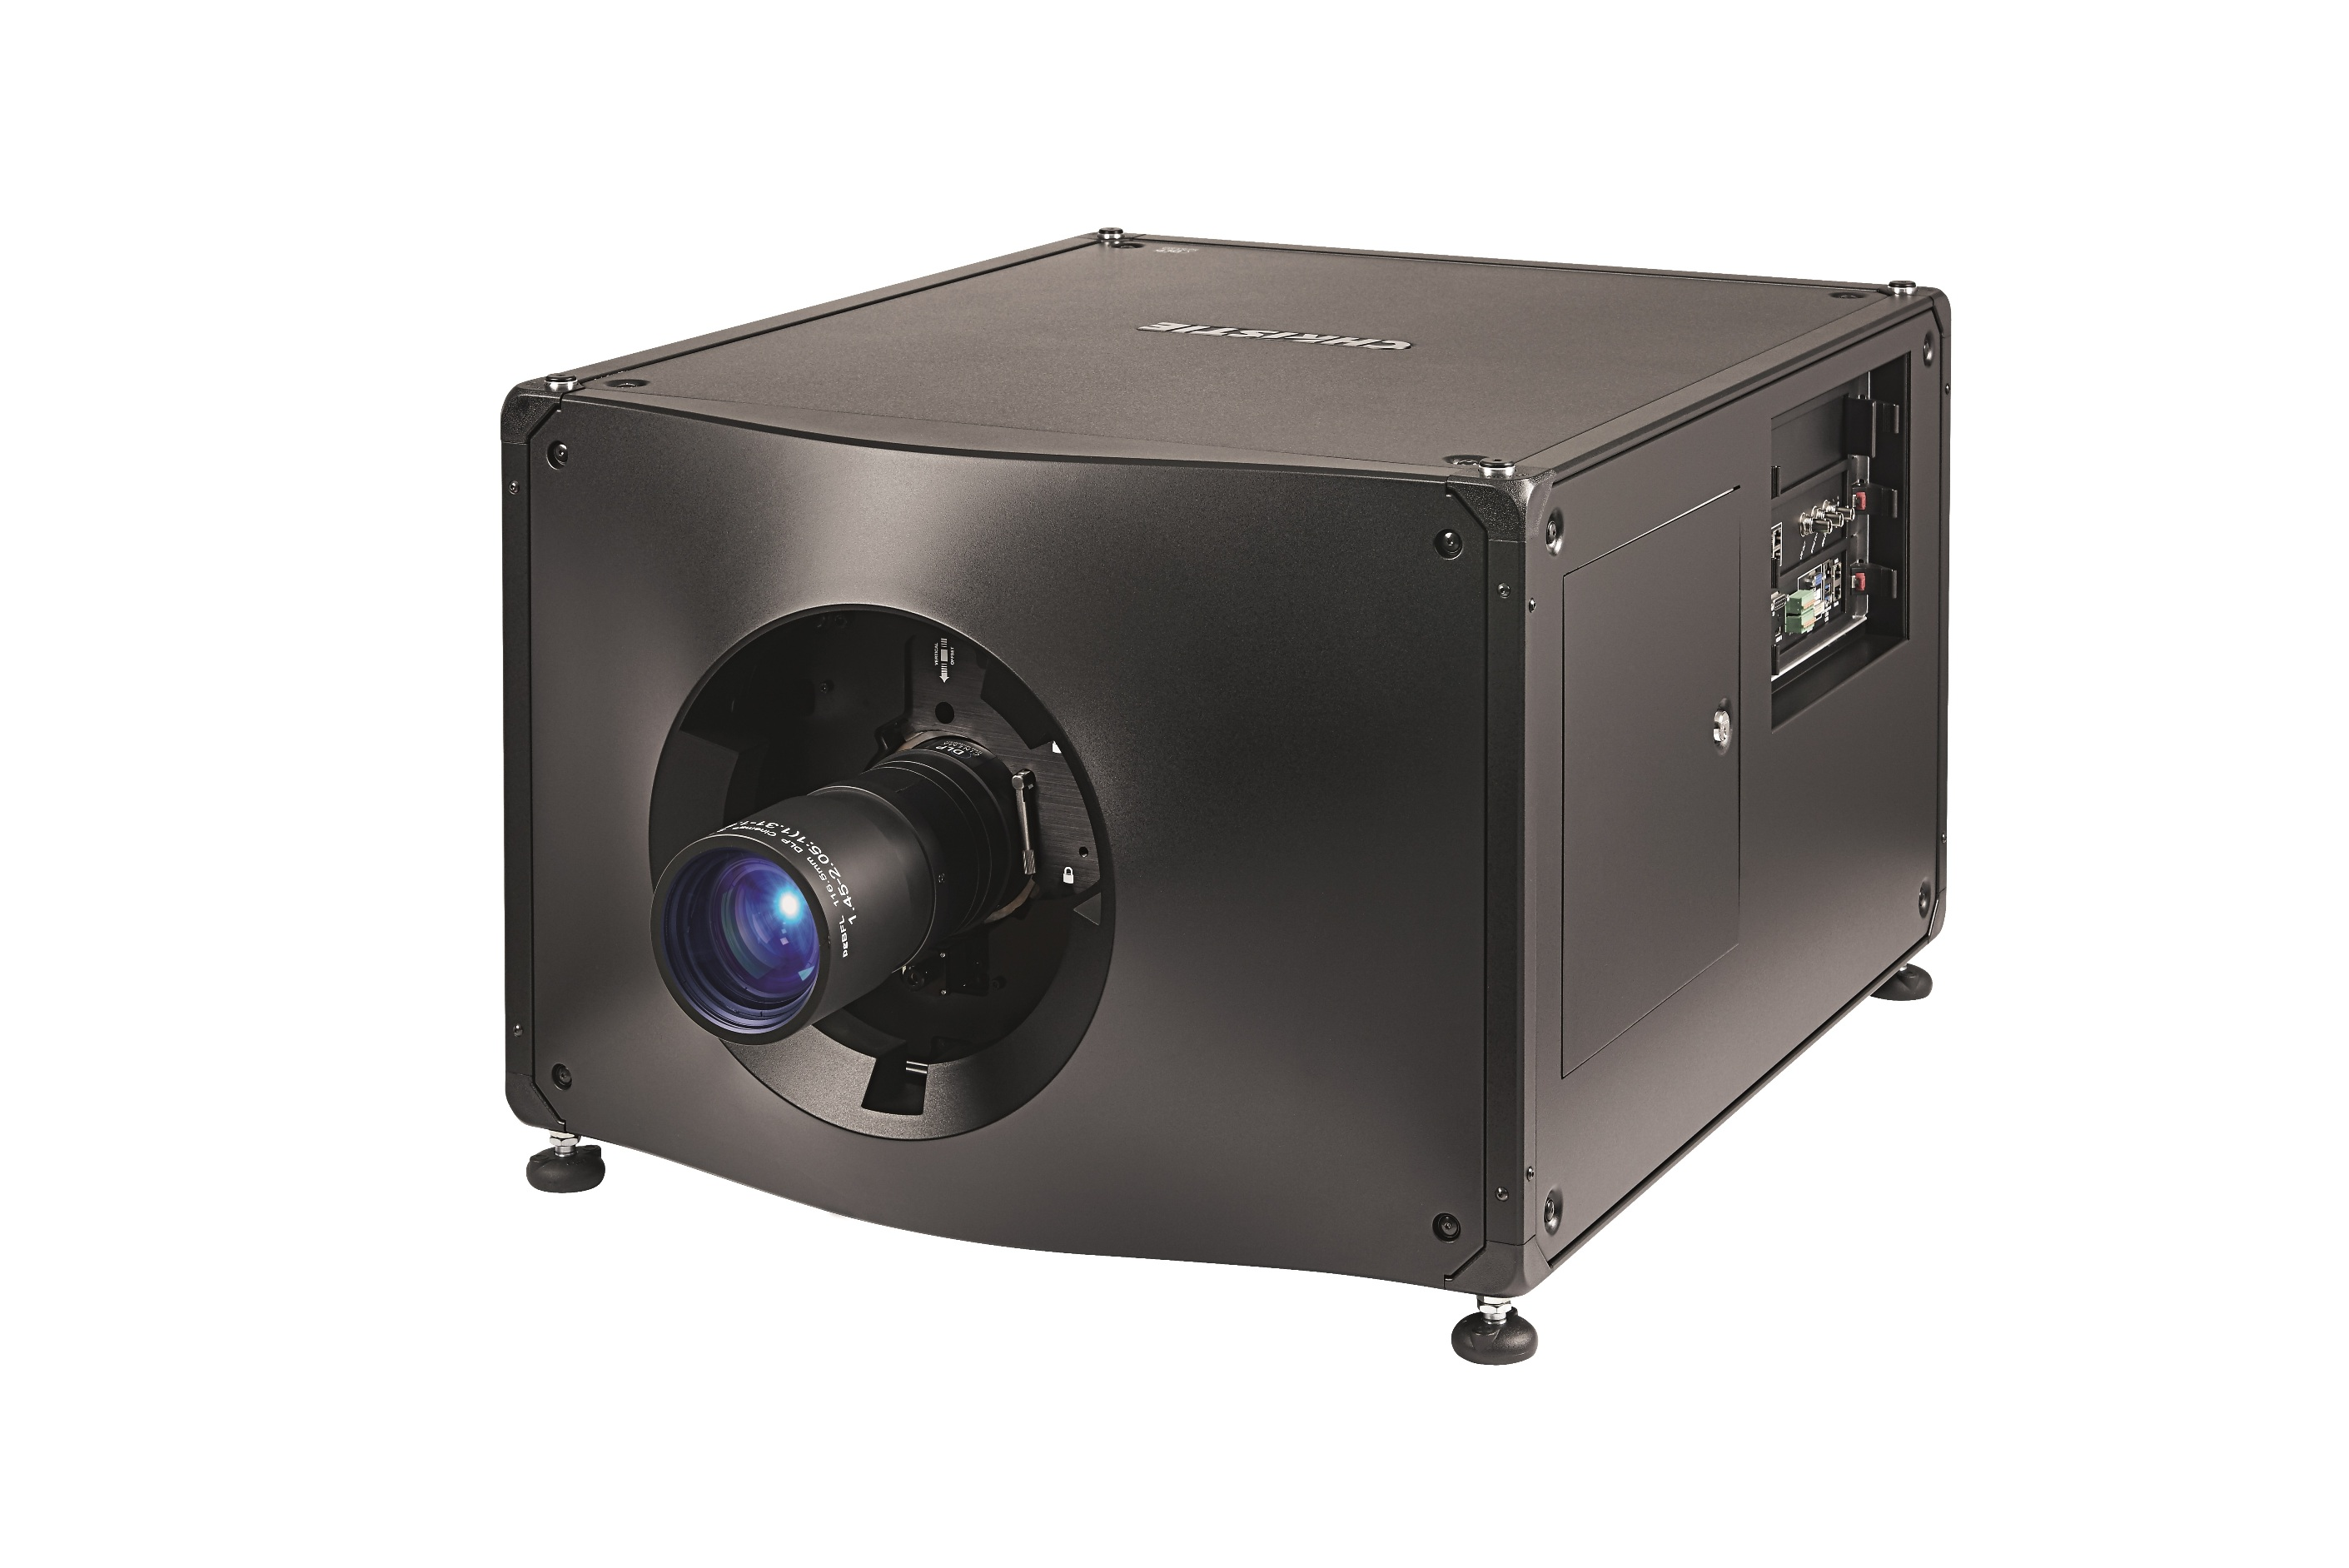 Cinema 21 acquires Christie CP4325-RGB RealLaser projectors for its